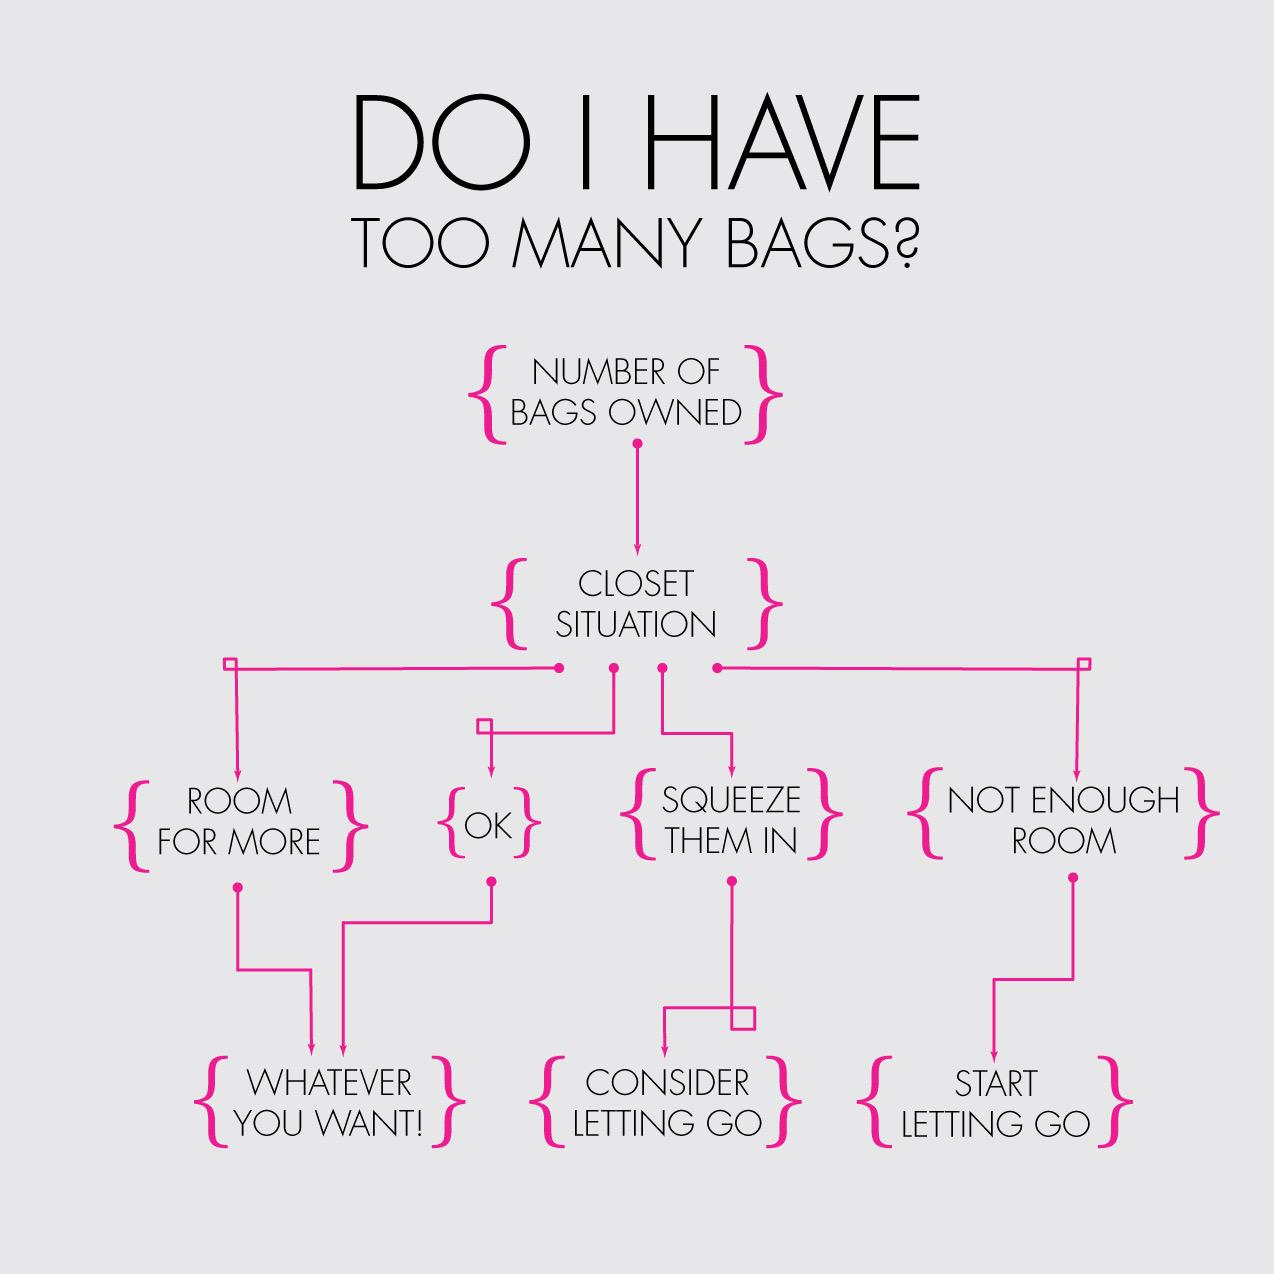 Too Many Bags?